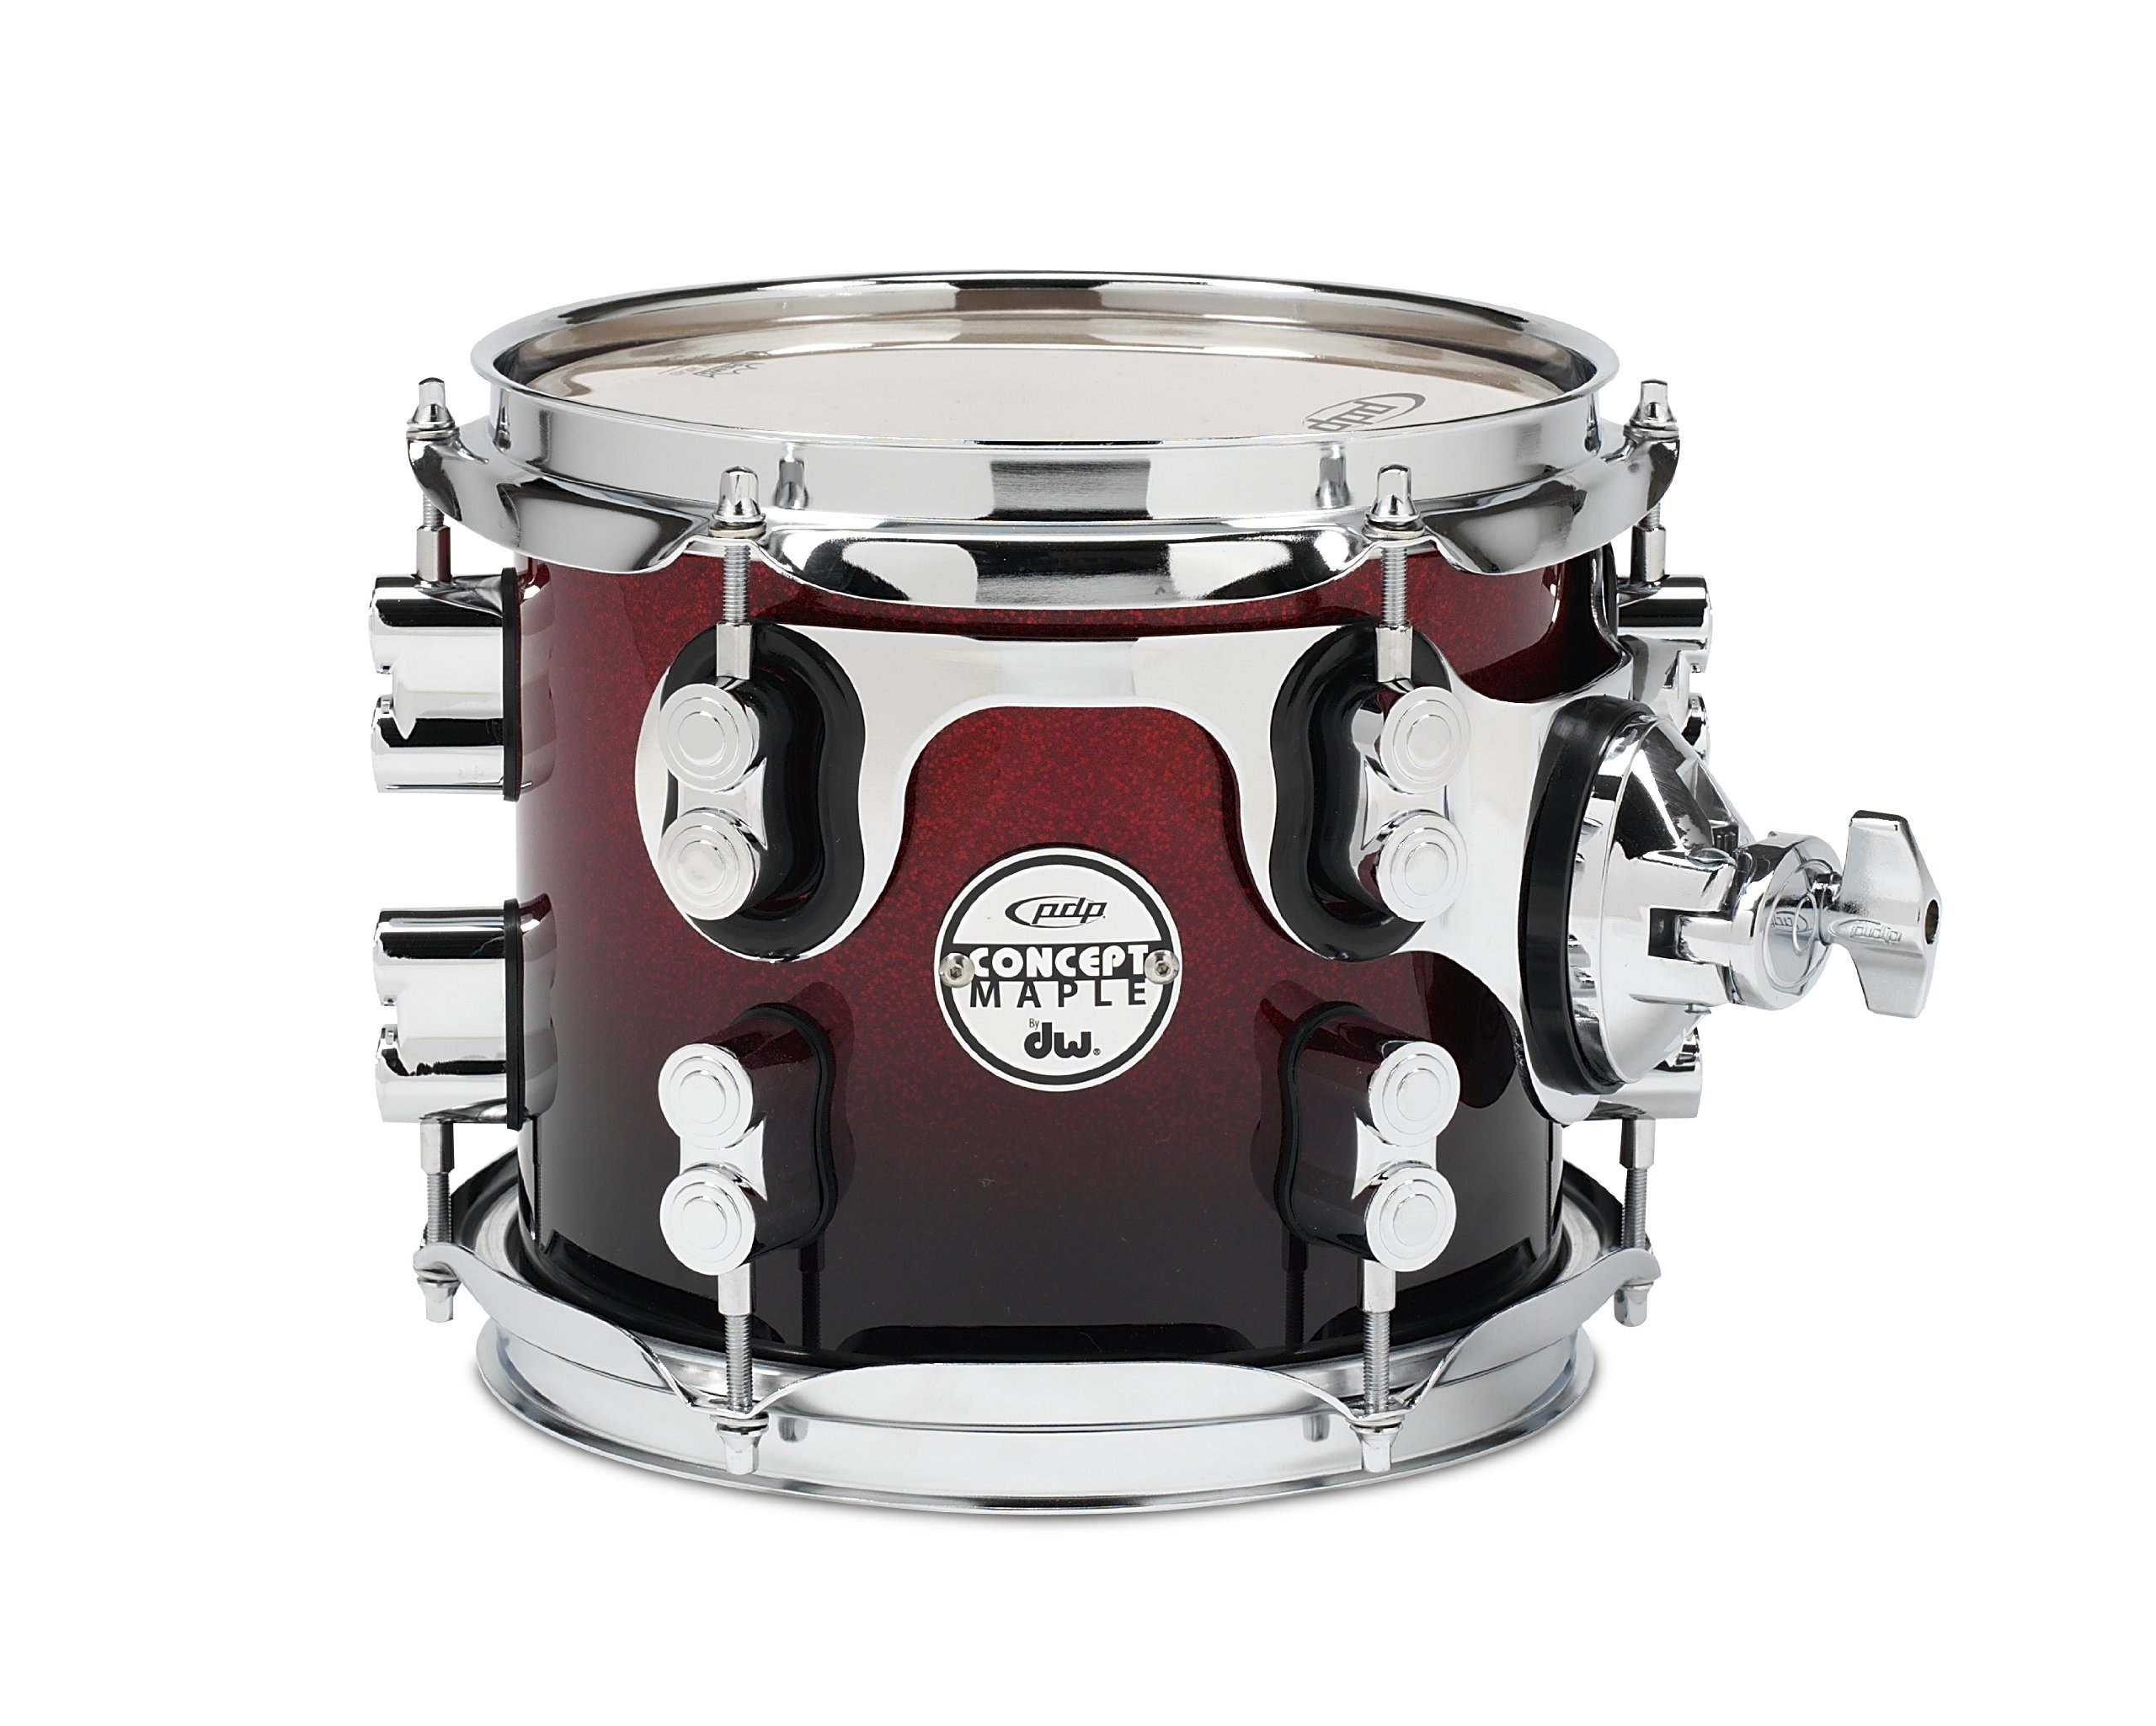 Pacific Drums PDCM0708STRB 7 x 8 Inches Tom with Chrome Hardware - Red to Black Fade by Pacific Drums